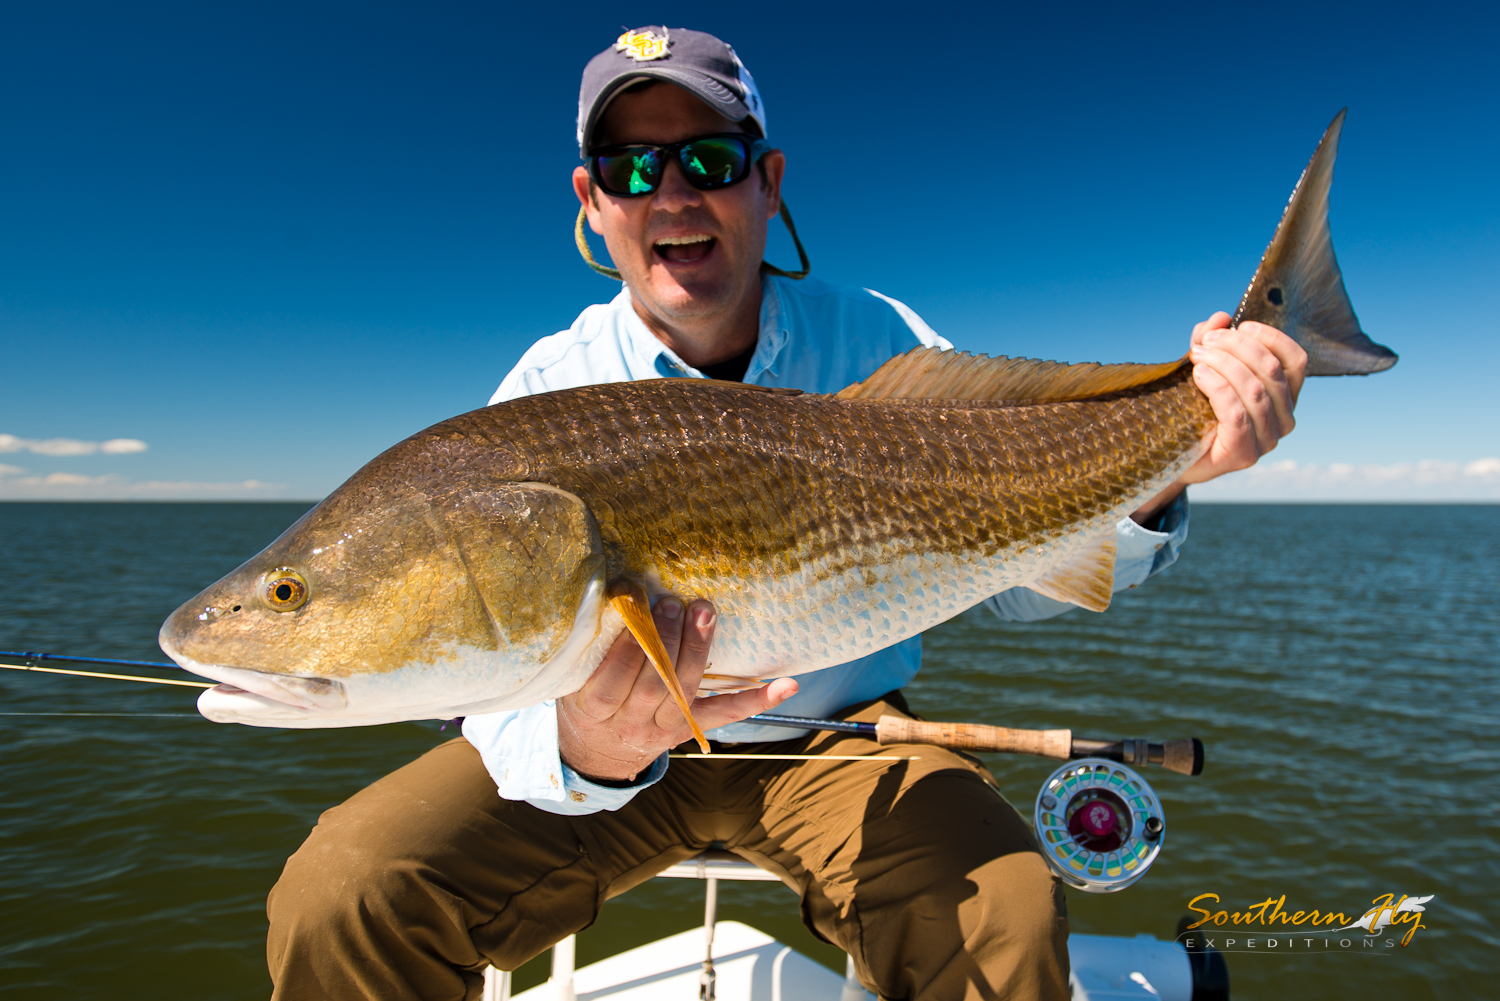 the best fly fishing guide in new orleans la southern fly expeditions